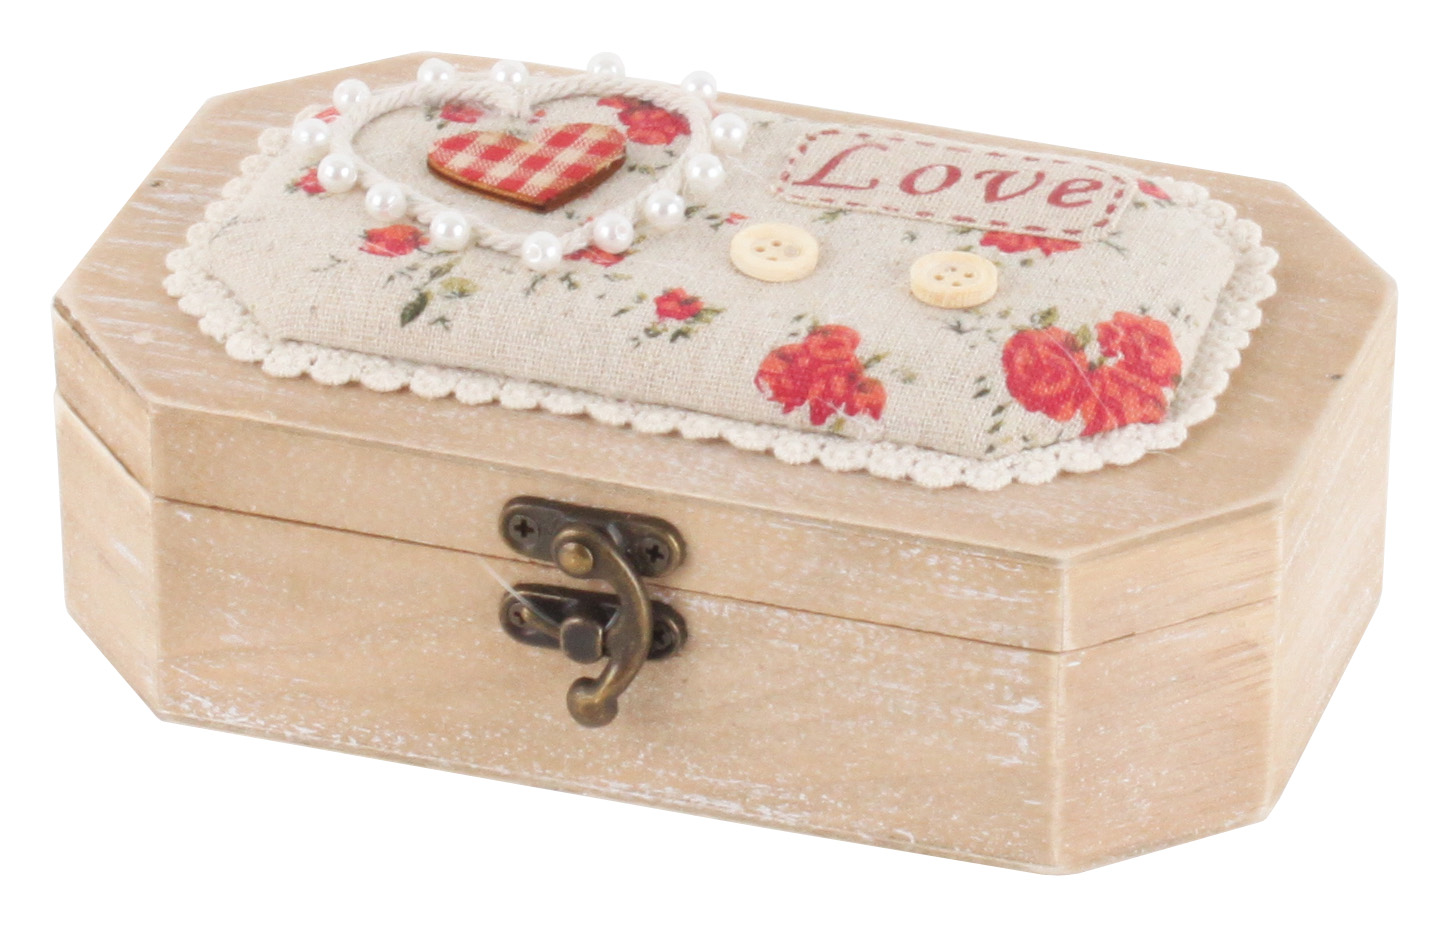 €18 WOODEN WALL BOX W/ FABRIC DETAILS 20X13X7